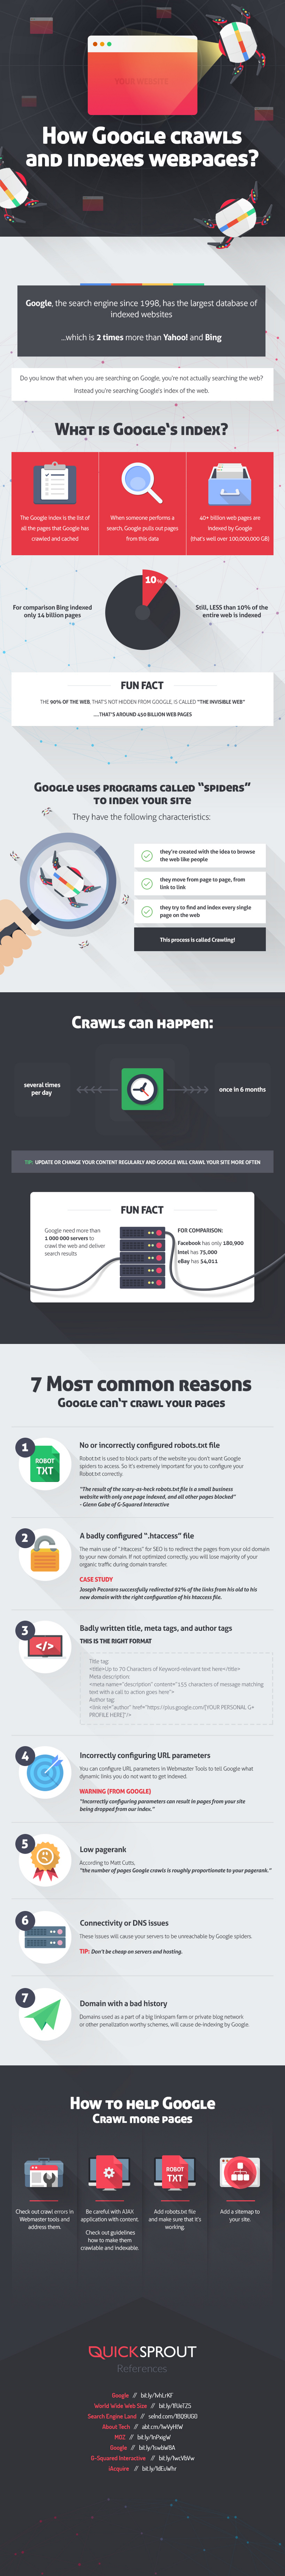 Reasons-Google-Does-Not-Index